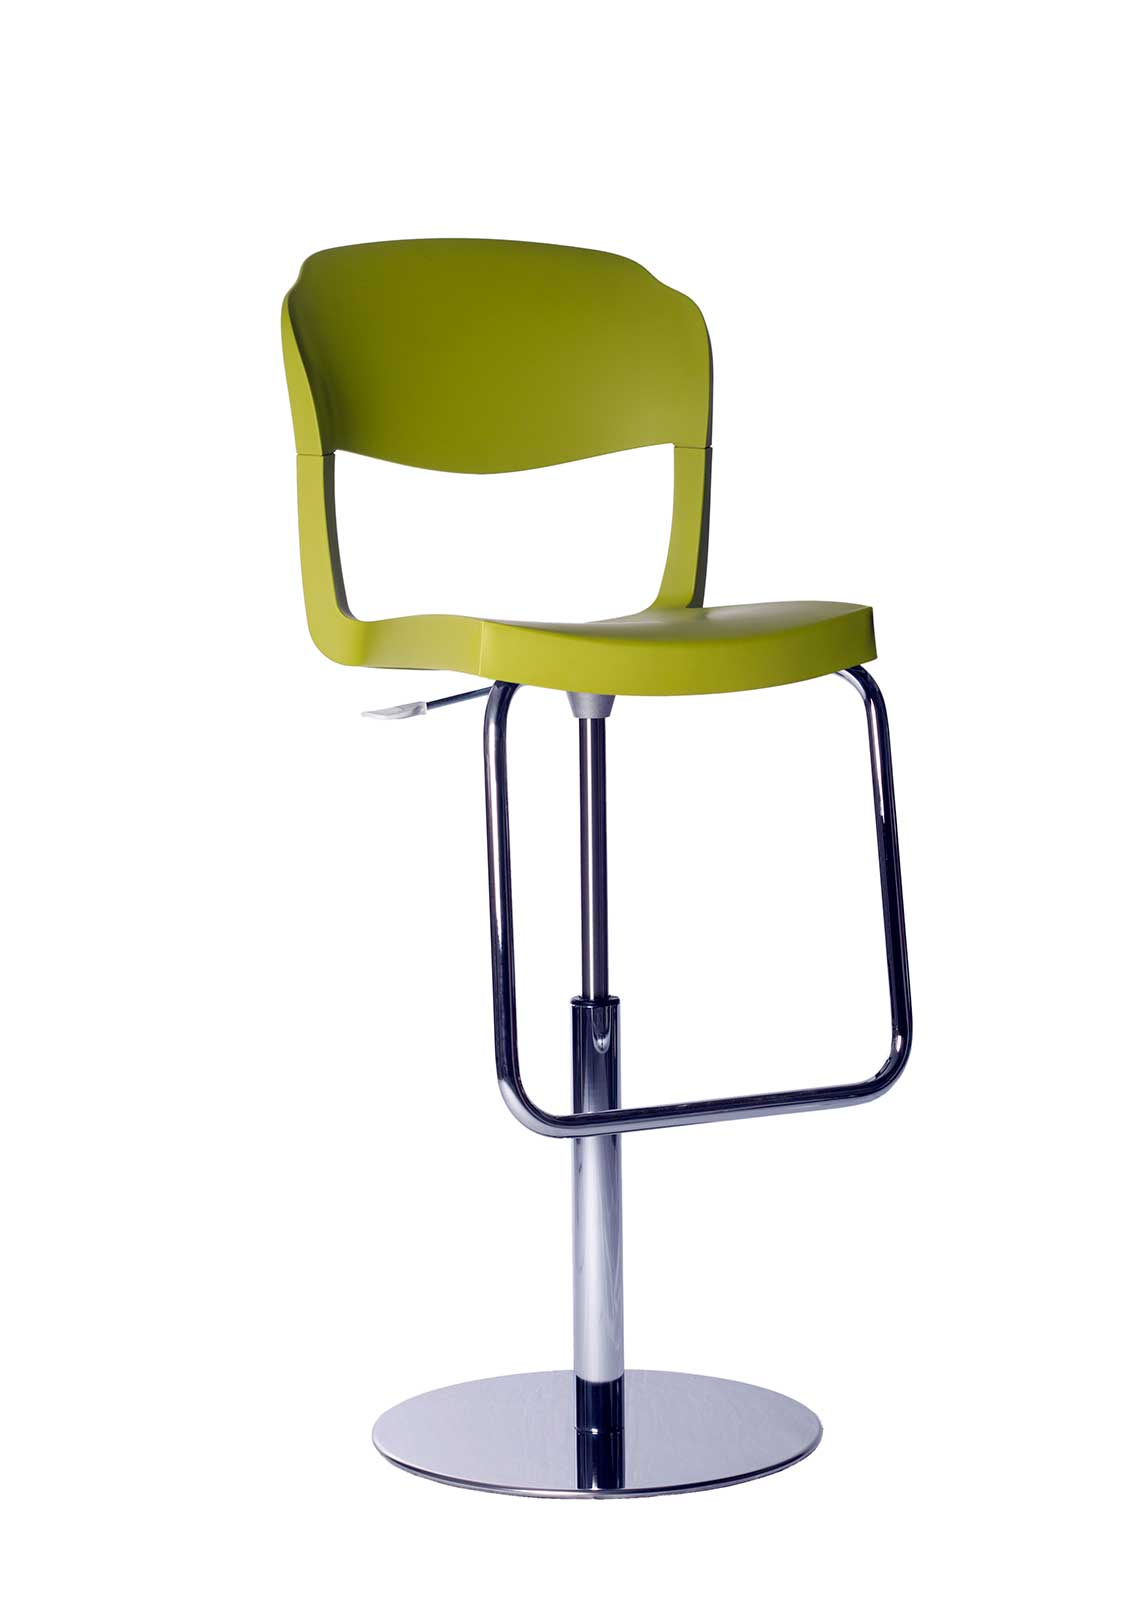 stool bar black chair light dark brown kitchen green grey red backrest furniture stores choice design delivery factors sale home homestore house